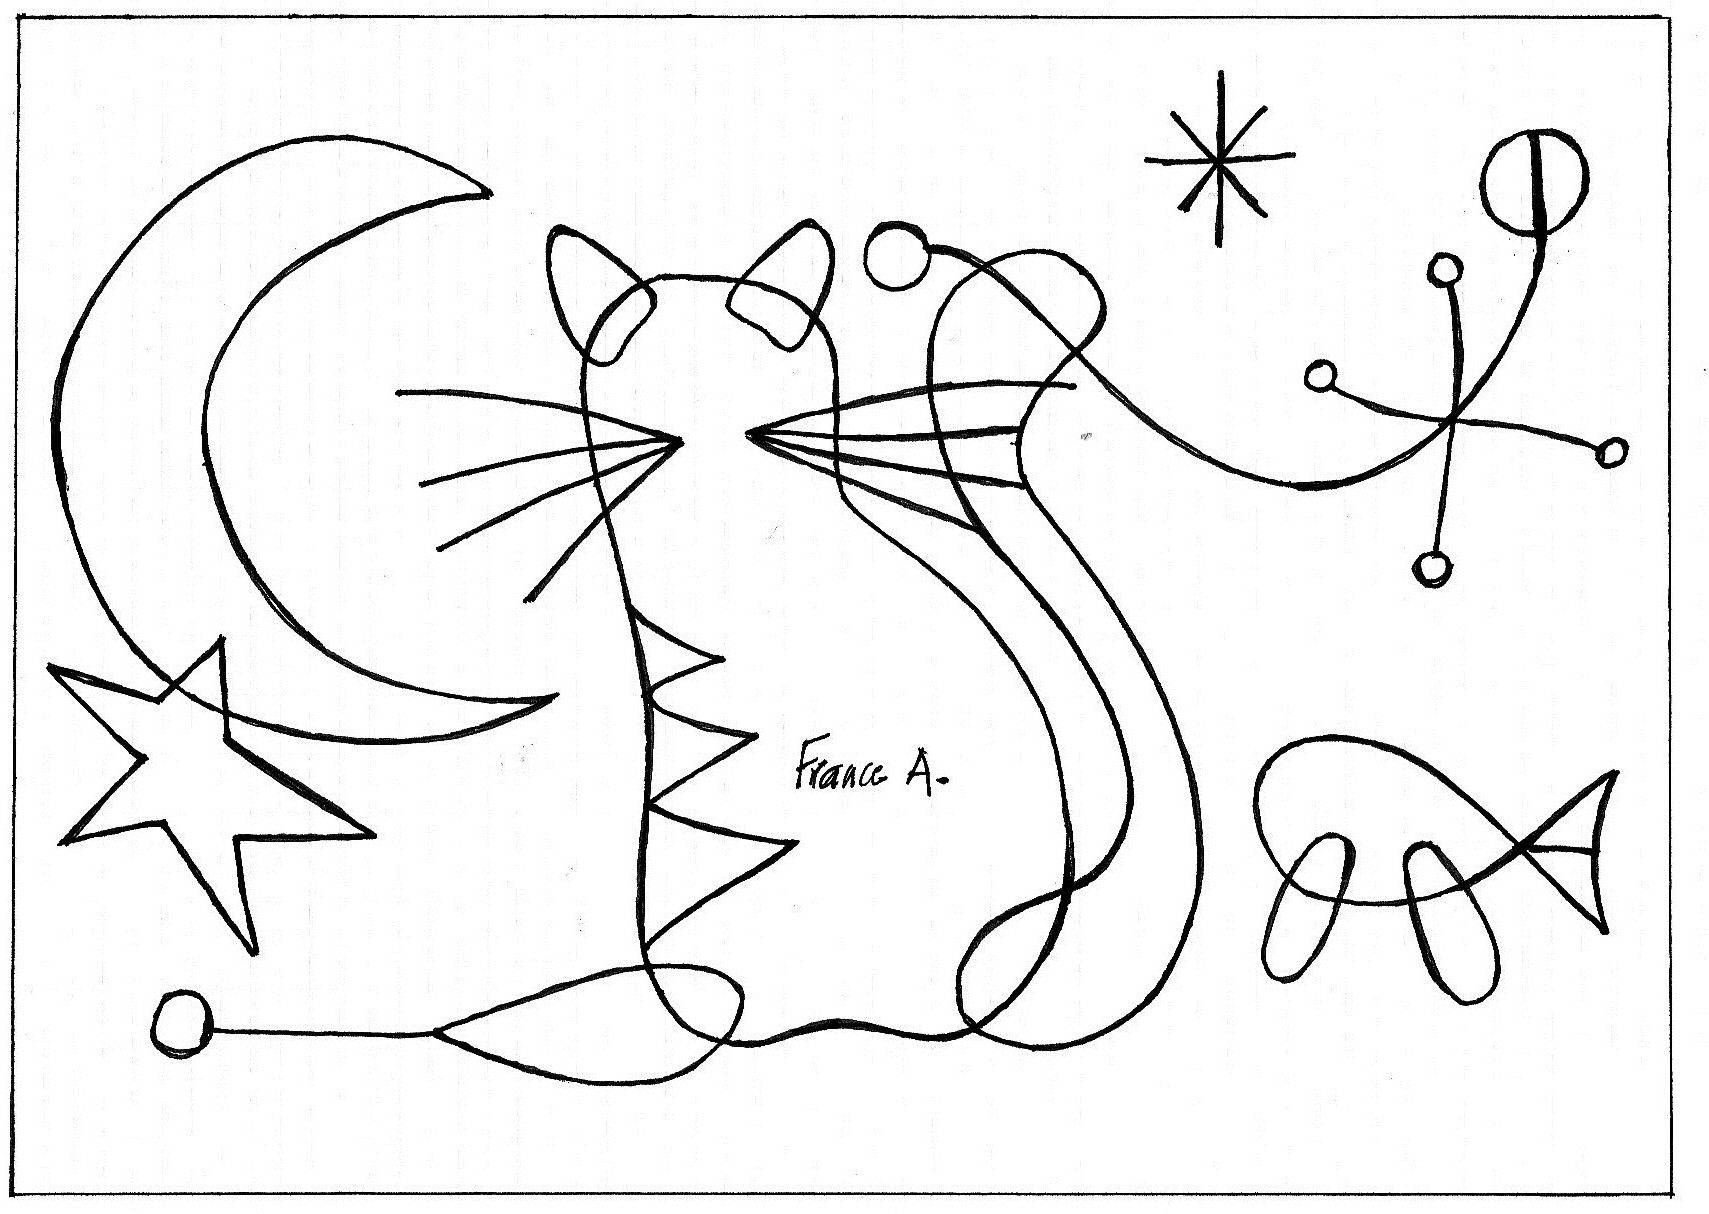 Chat fa on miro illustration marialucialeite pinterest for Paul klee coloring pages